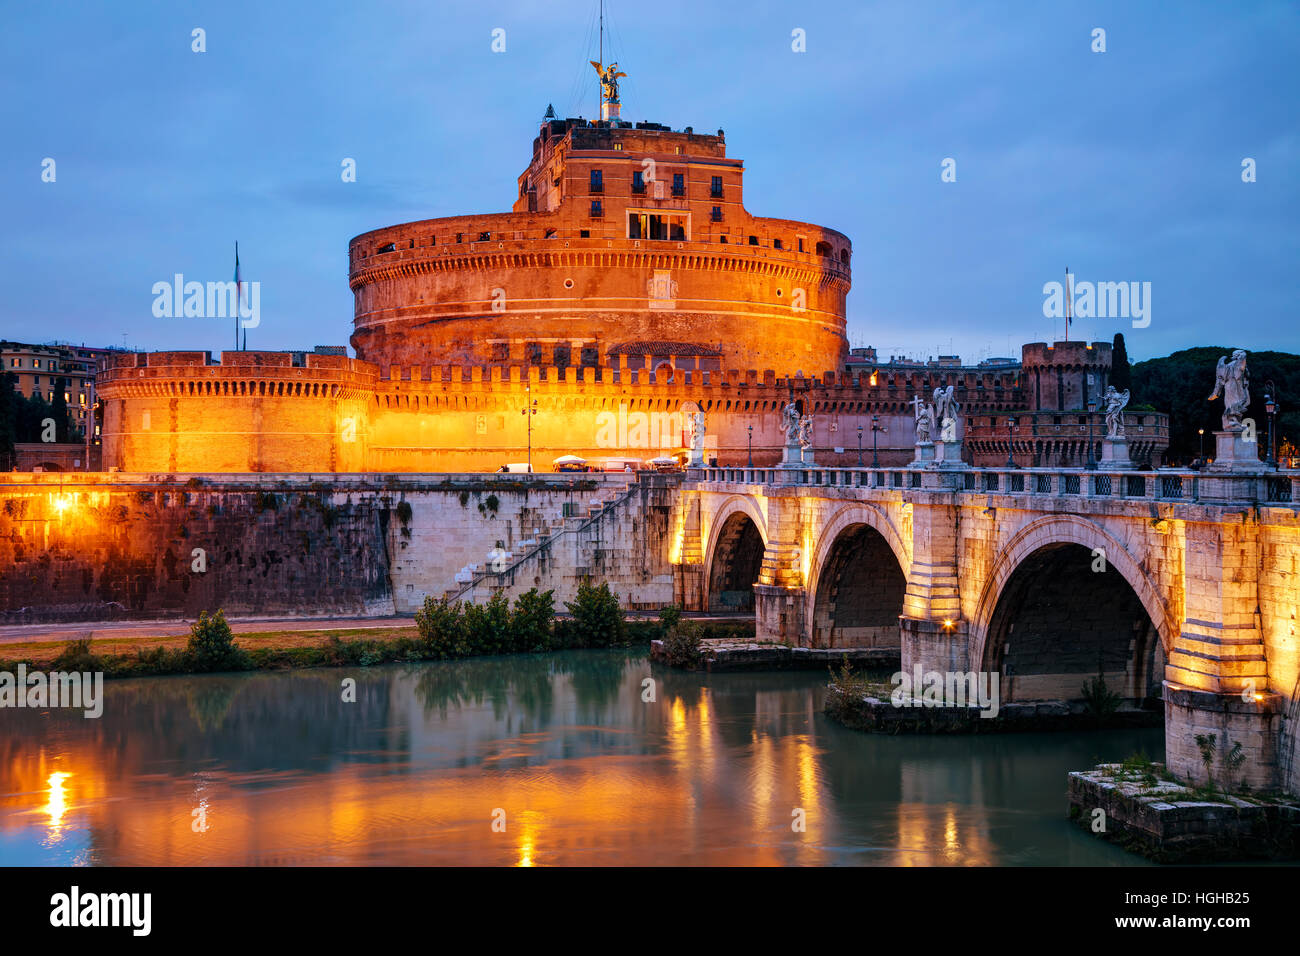 The Mausoleum of Hadrian (Castel Sant'Angelo) in Rome at night - Stock Image